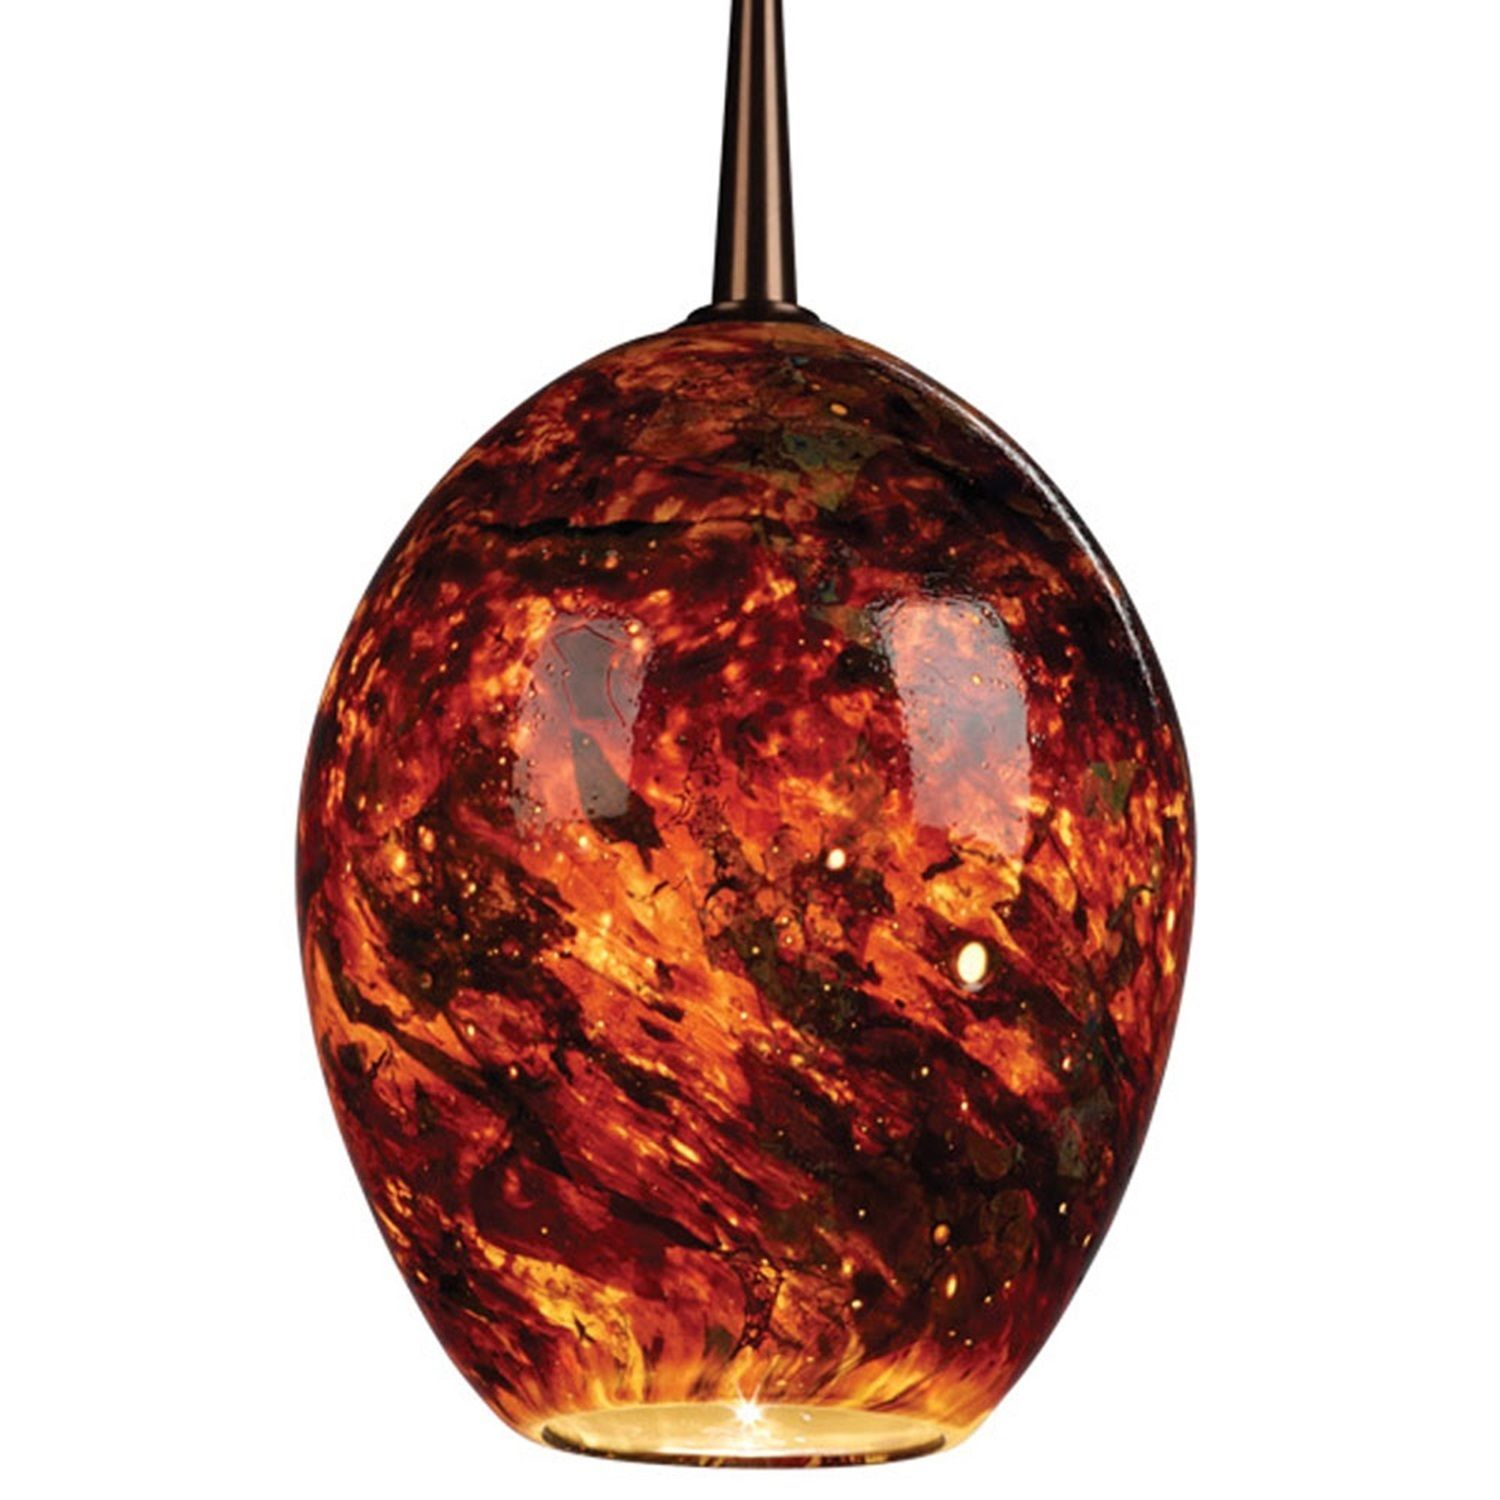 Bruck Lighting Bolero - Low Voltage 4-inch Kiss Canopy Bronze Pendant - Autumn Leaf Shade